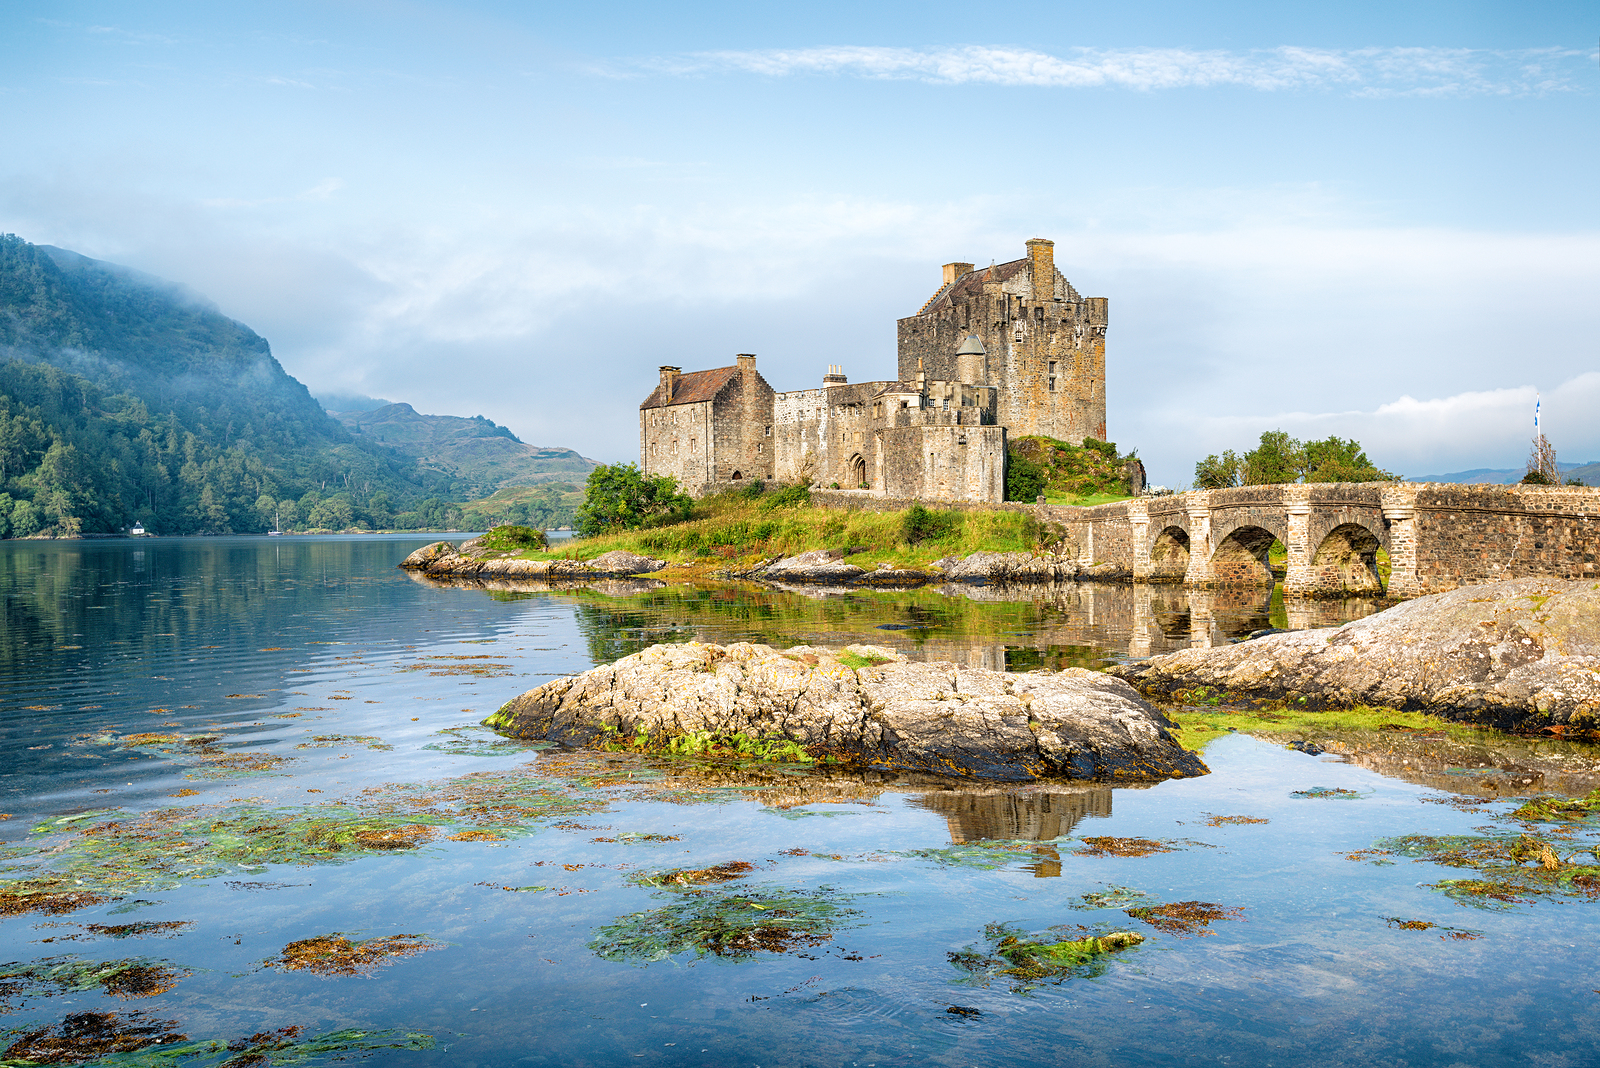 Visit Eilean Donnan Castle on the road to Skye